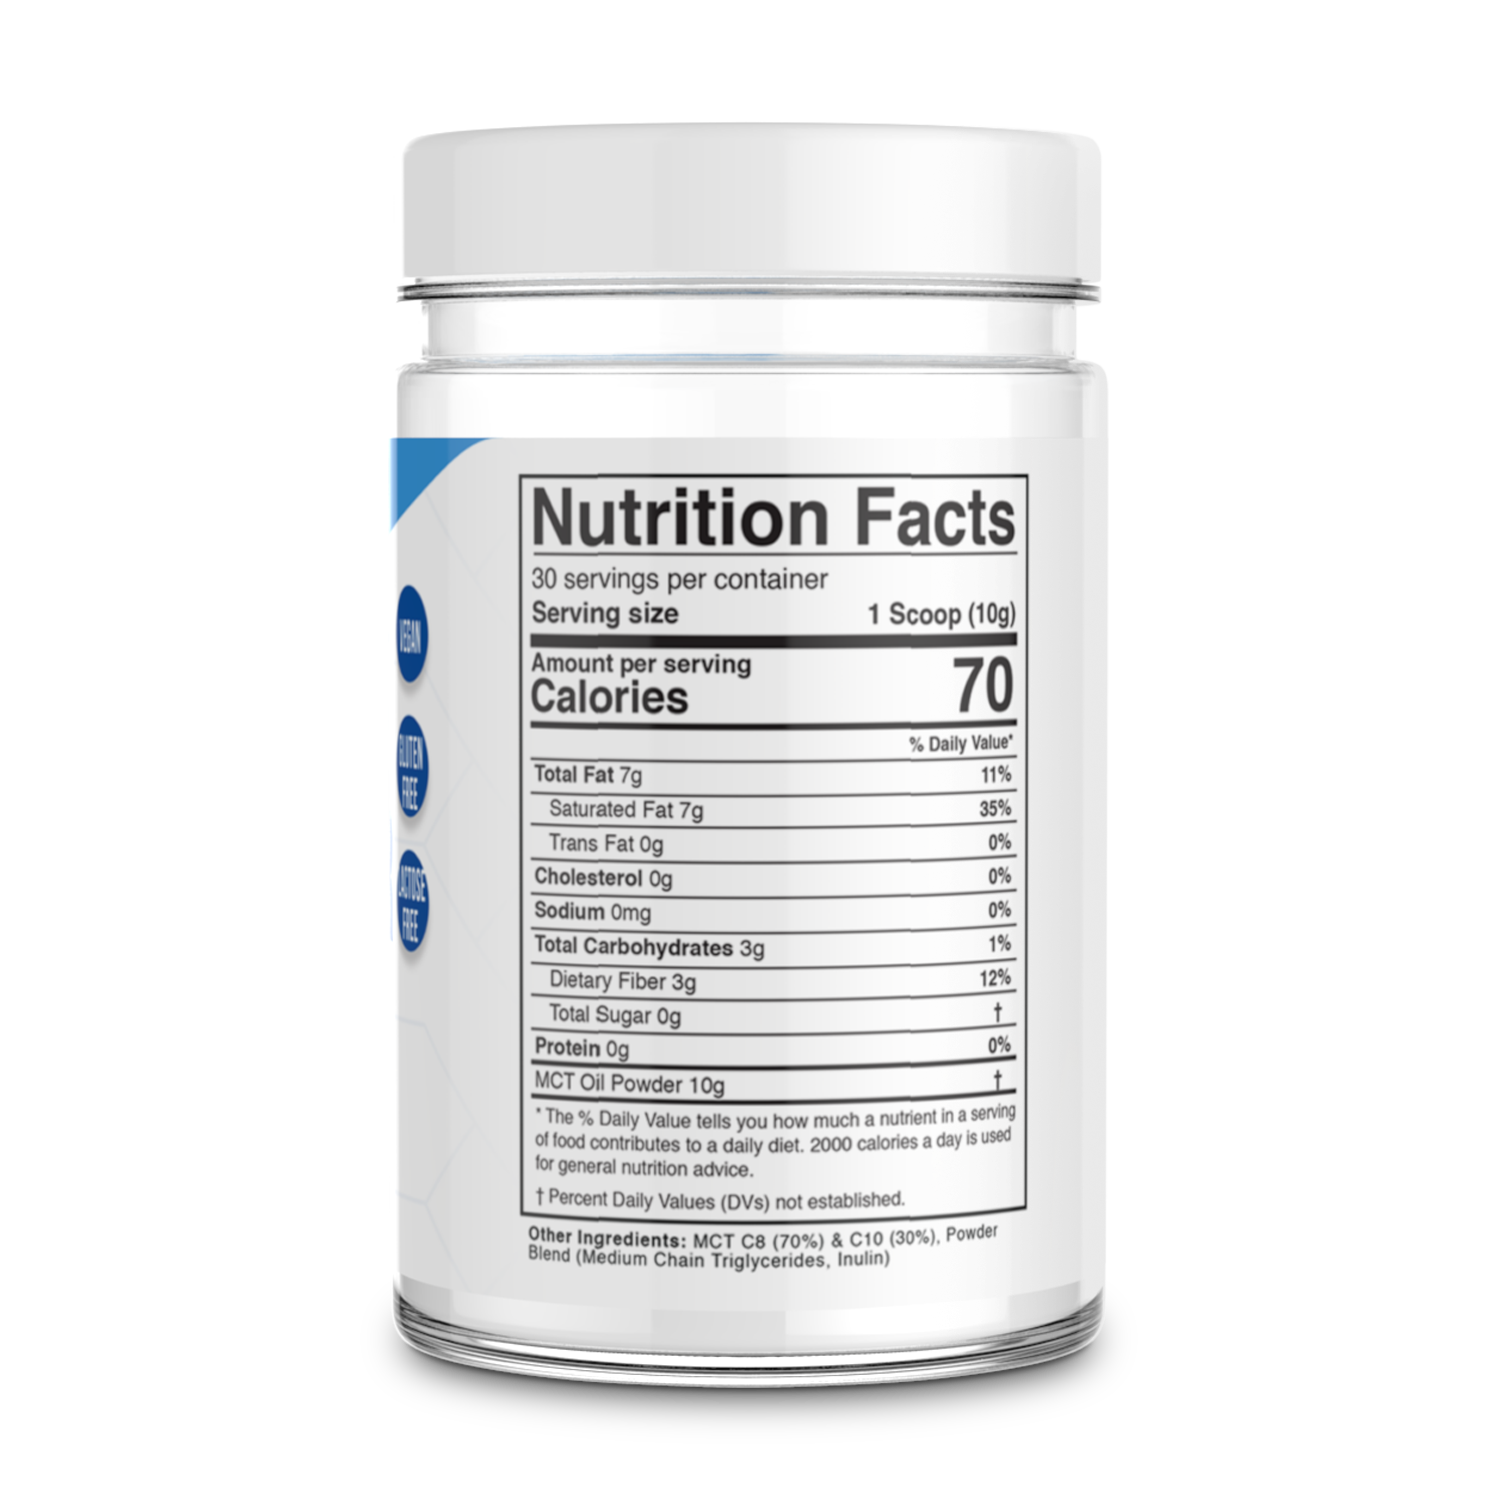 Unflavoured MCT Oil Powder Supplement Facts